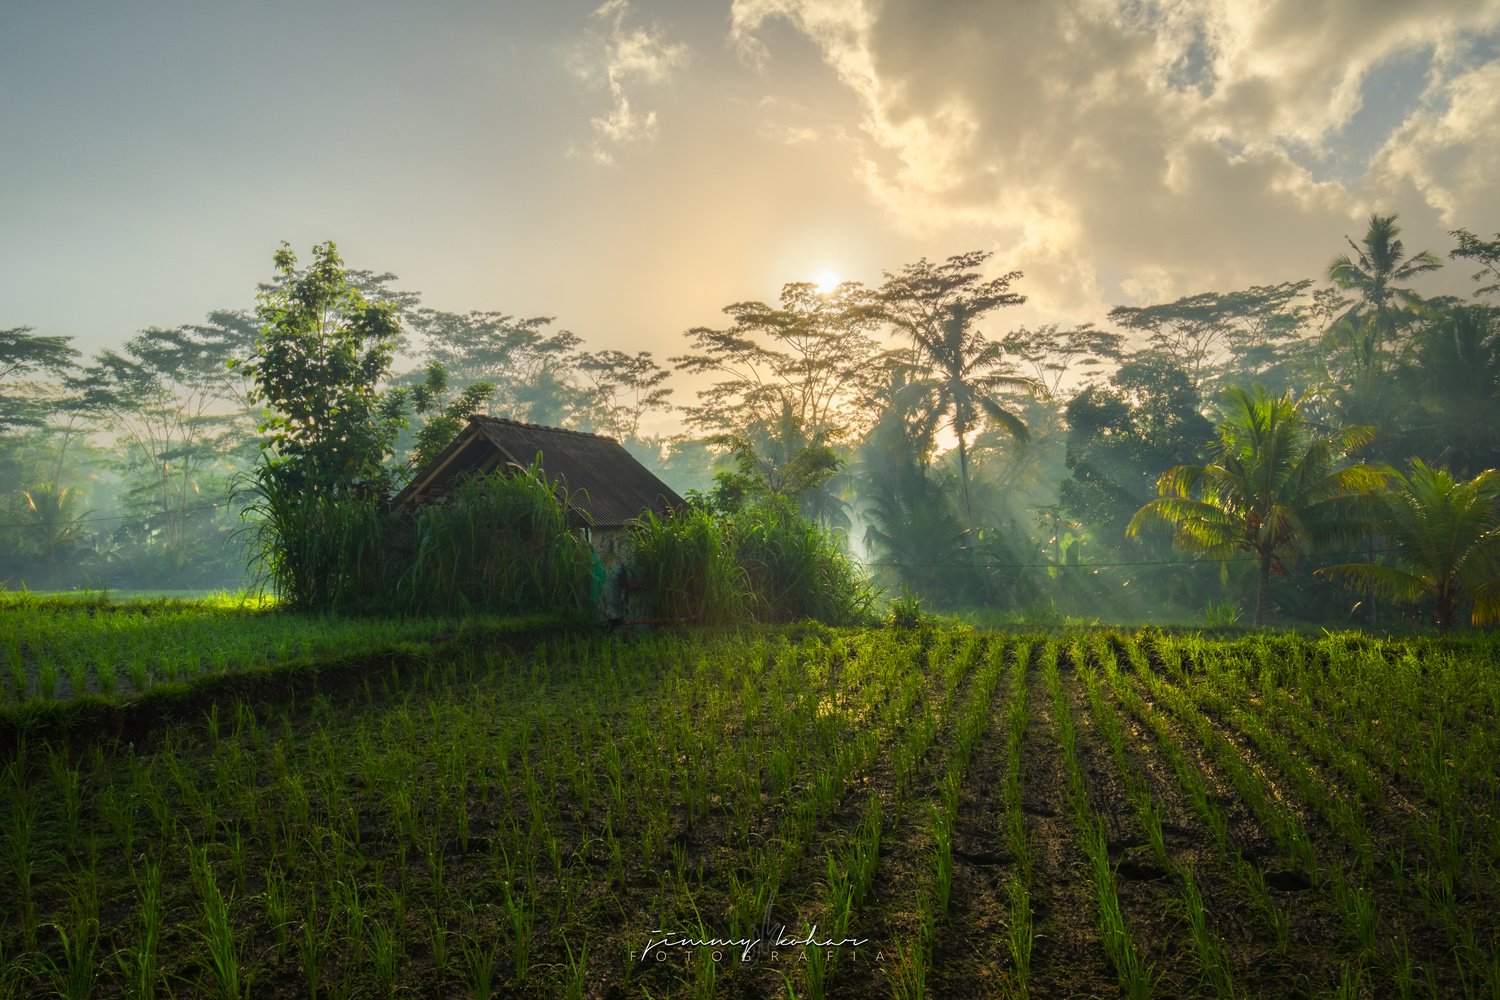 Morning Rays at Susut Rice Terrace by Jimmy Kohar